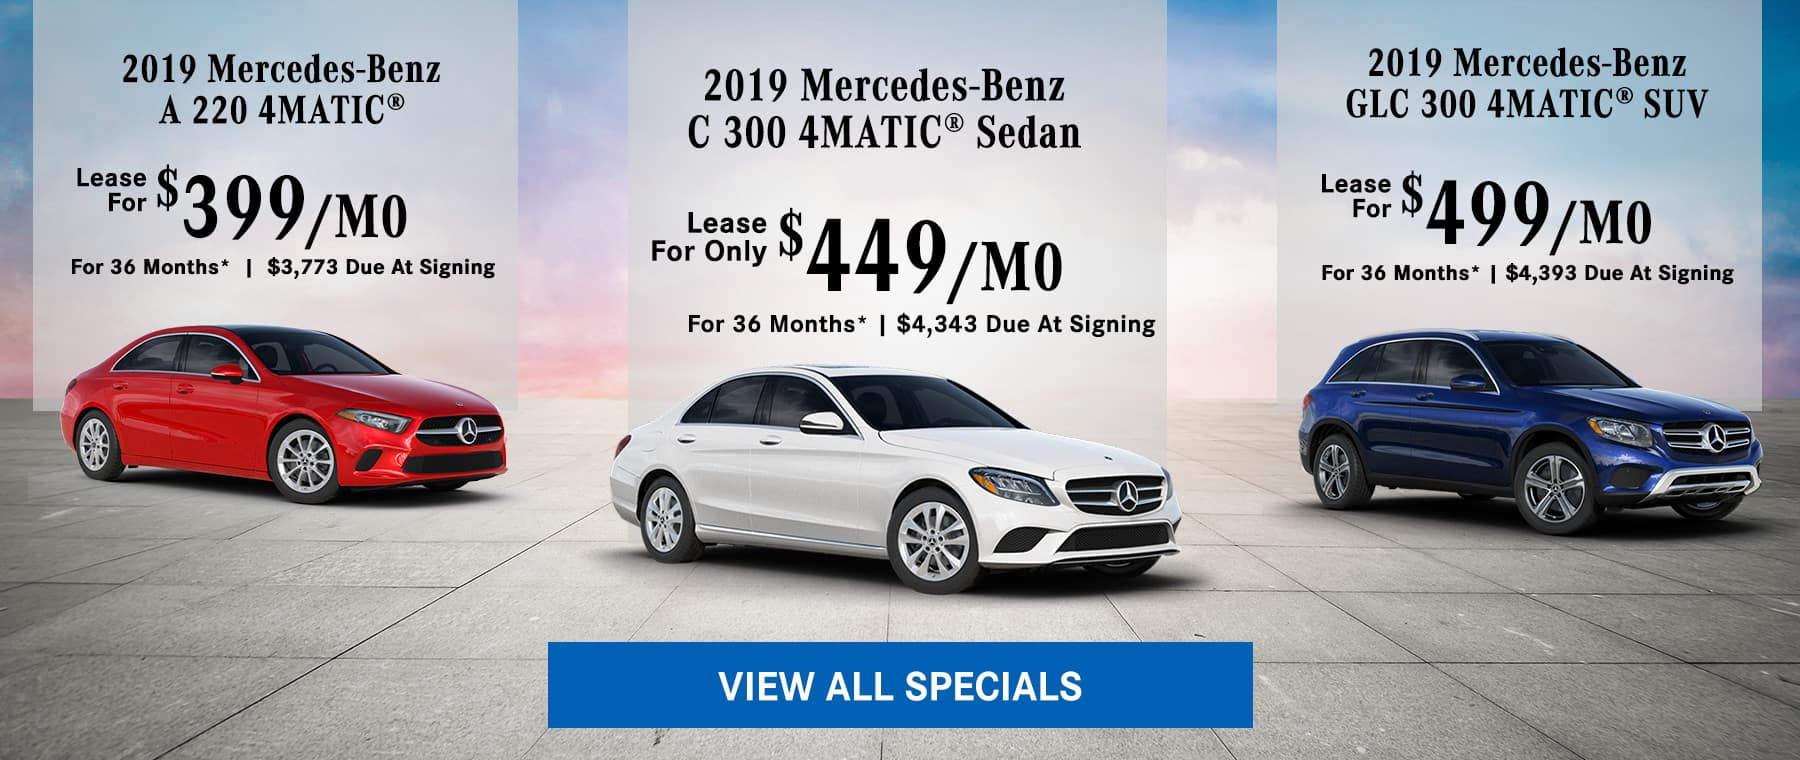 Mercedes-Benz Omaha Specials